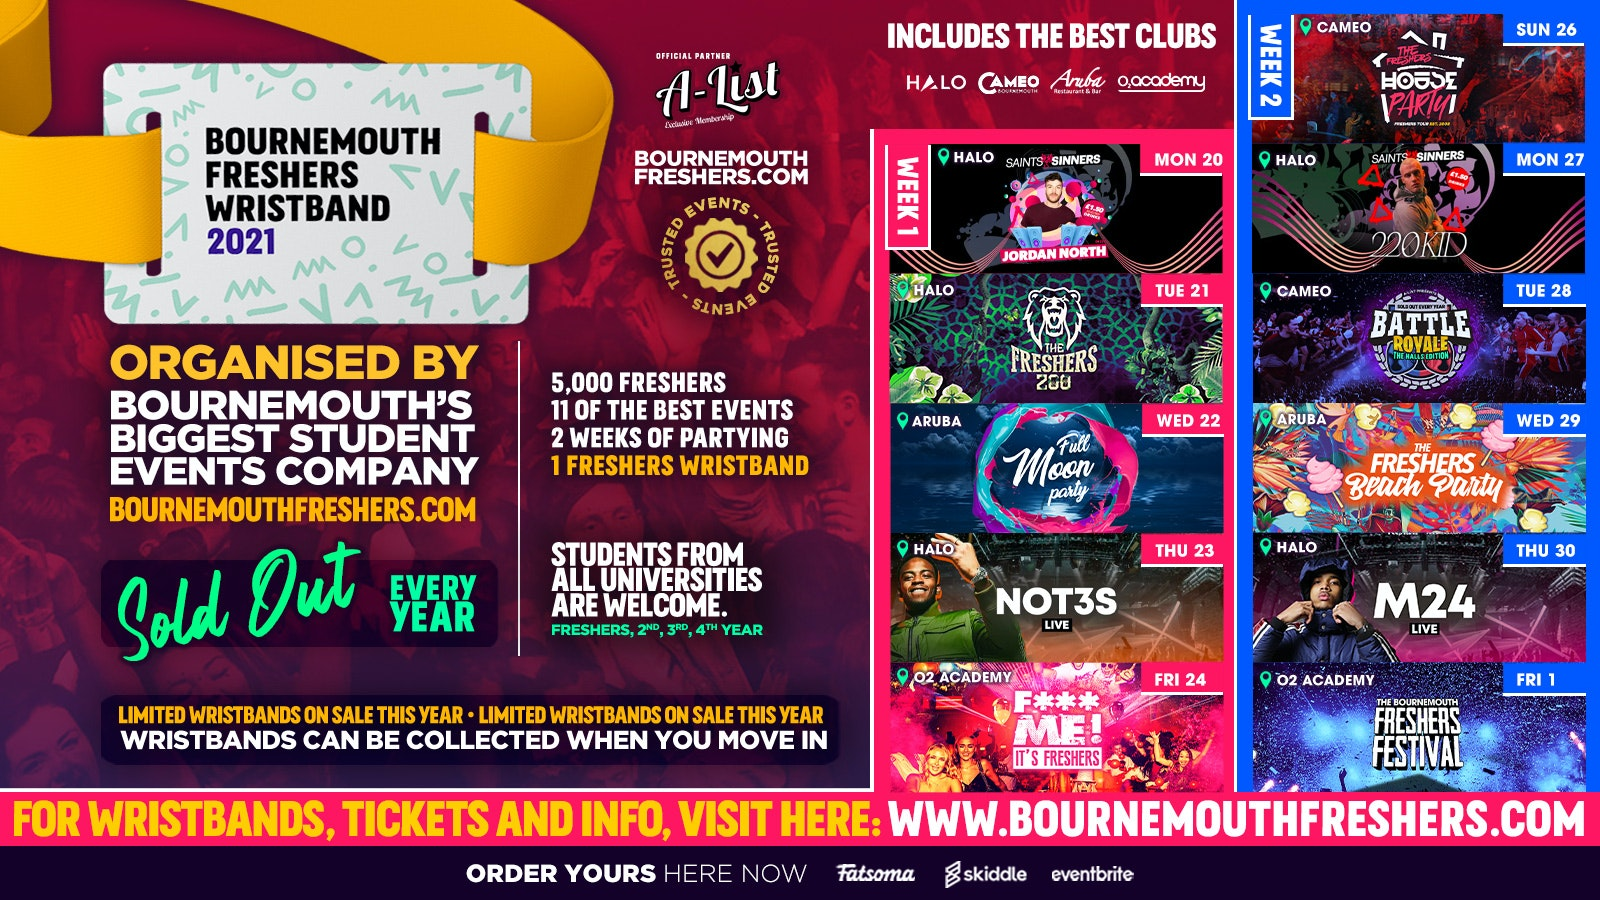 The Bournemouth Freshers Wristband //// Bournemouth Freshers 2021 – ON SALE NOW